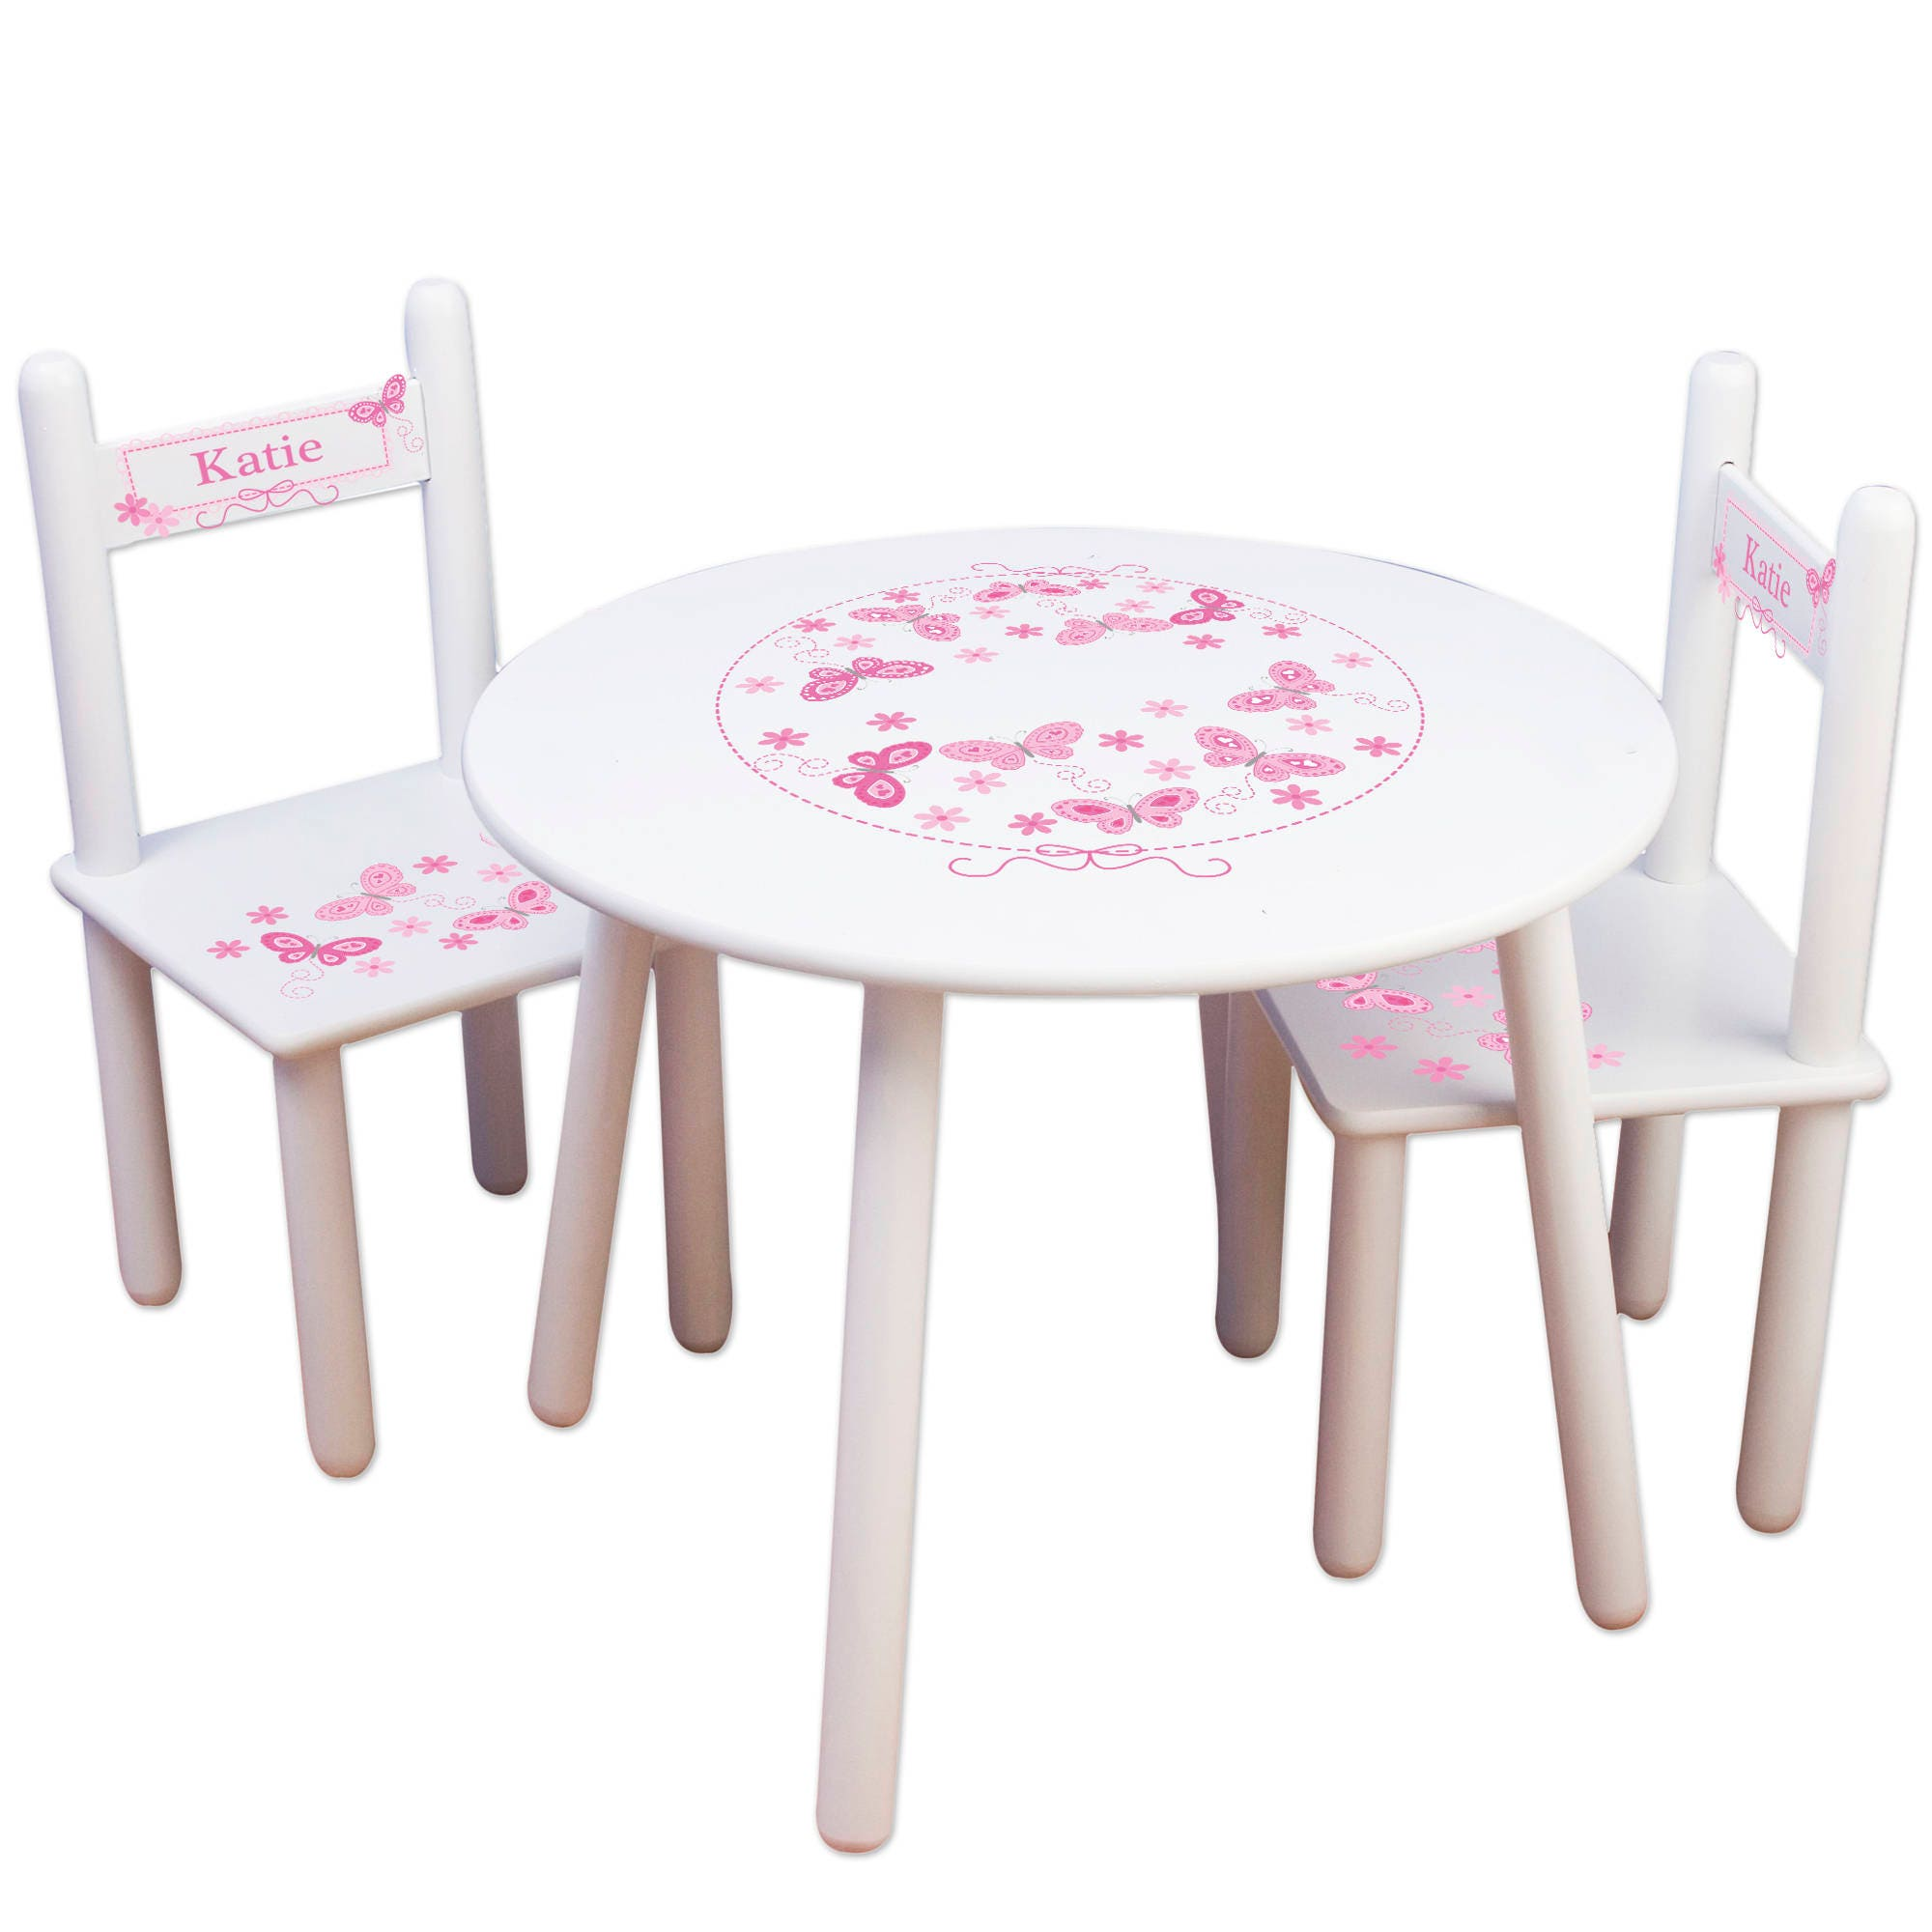 girl 39 s butterfly table chair set round tables and chairs. Black Bedroom Furniture Sets. Home Design Ideas